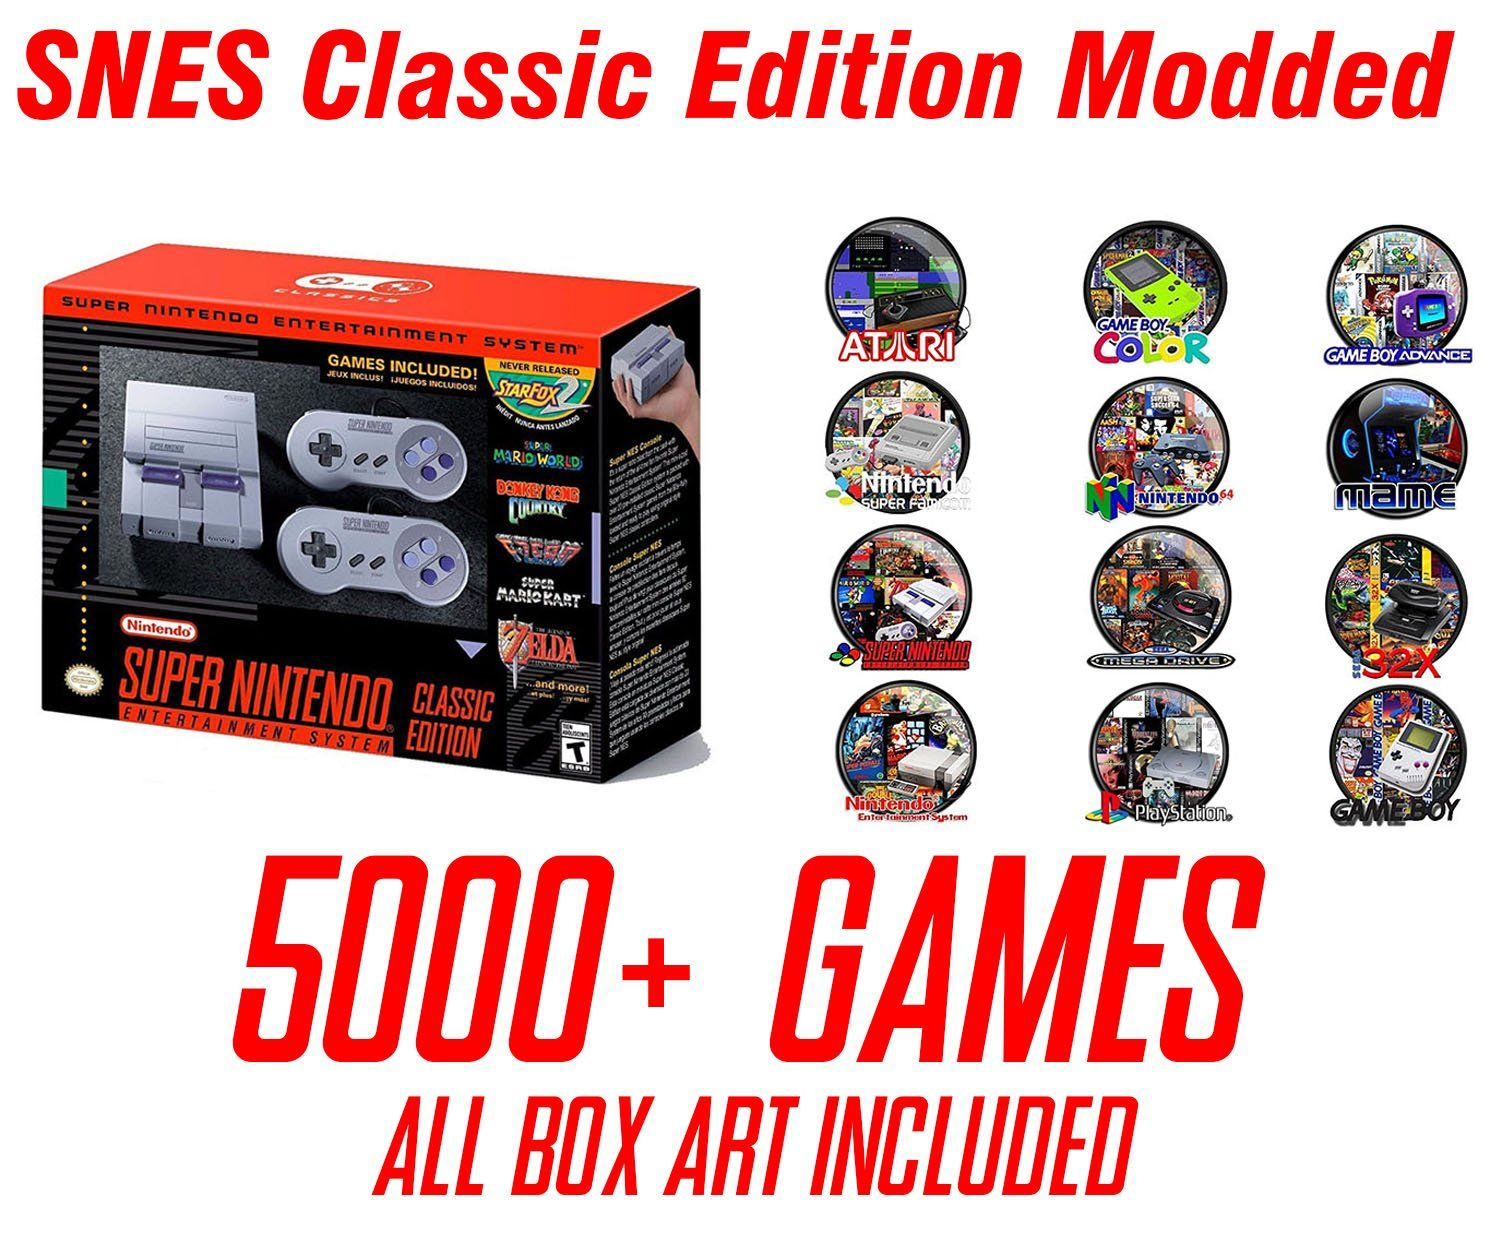 SNES Classic Edition Mini Modded Hacked 5000+ Games